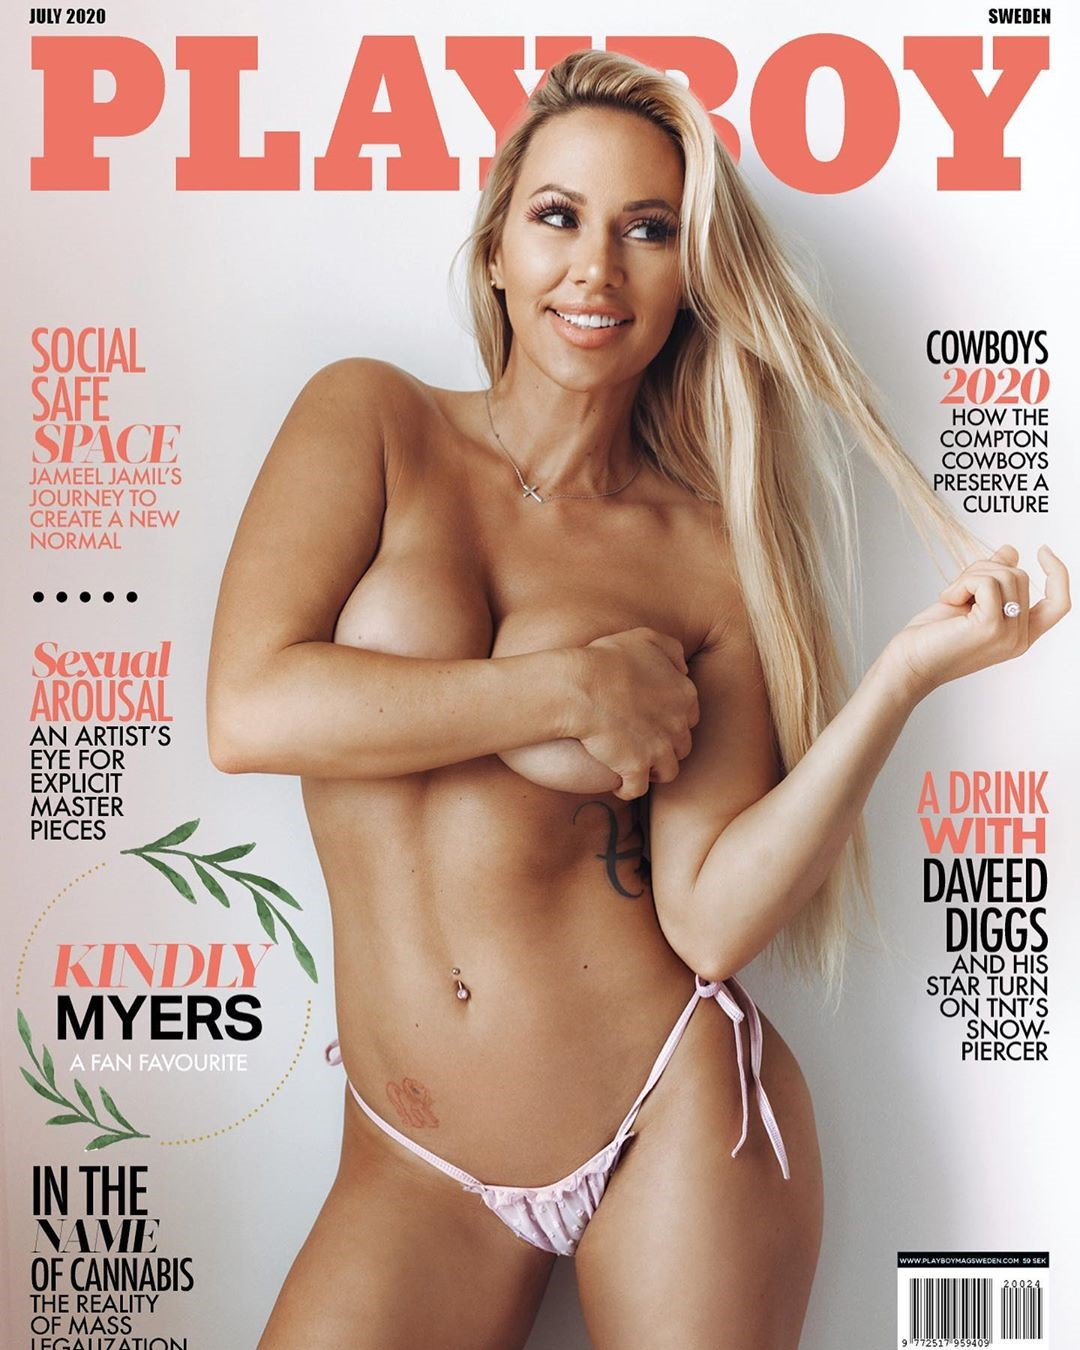 Kindly Myers 31